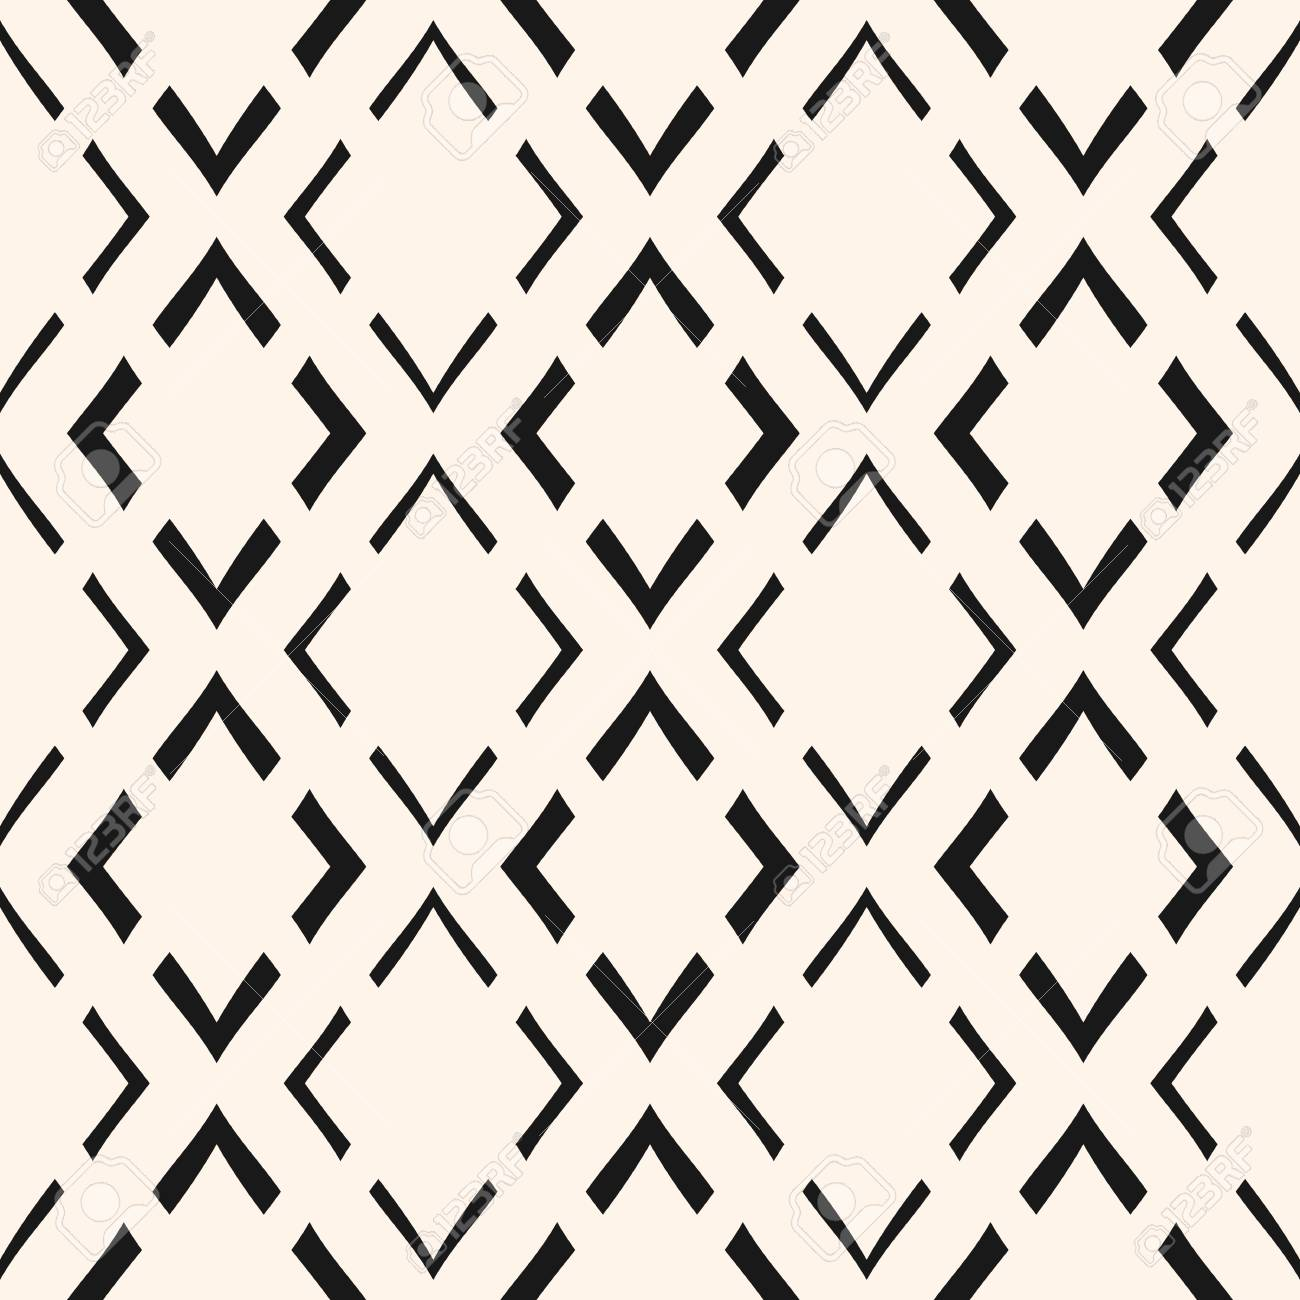 vector geometric seamless pattern modern abstract texture with rh es 123rf com simple geometric vector patterns simple geometric vector patterns